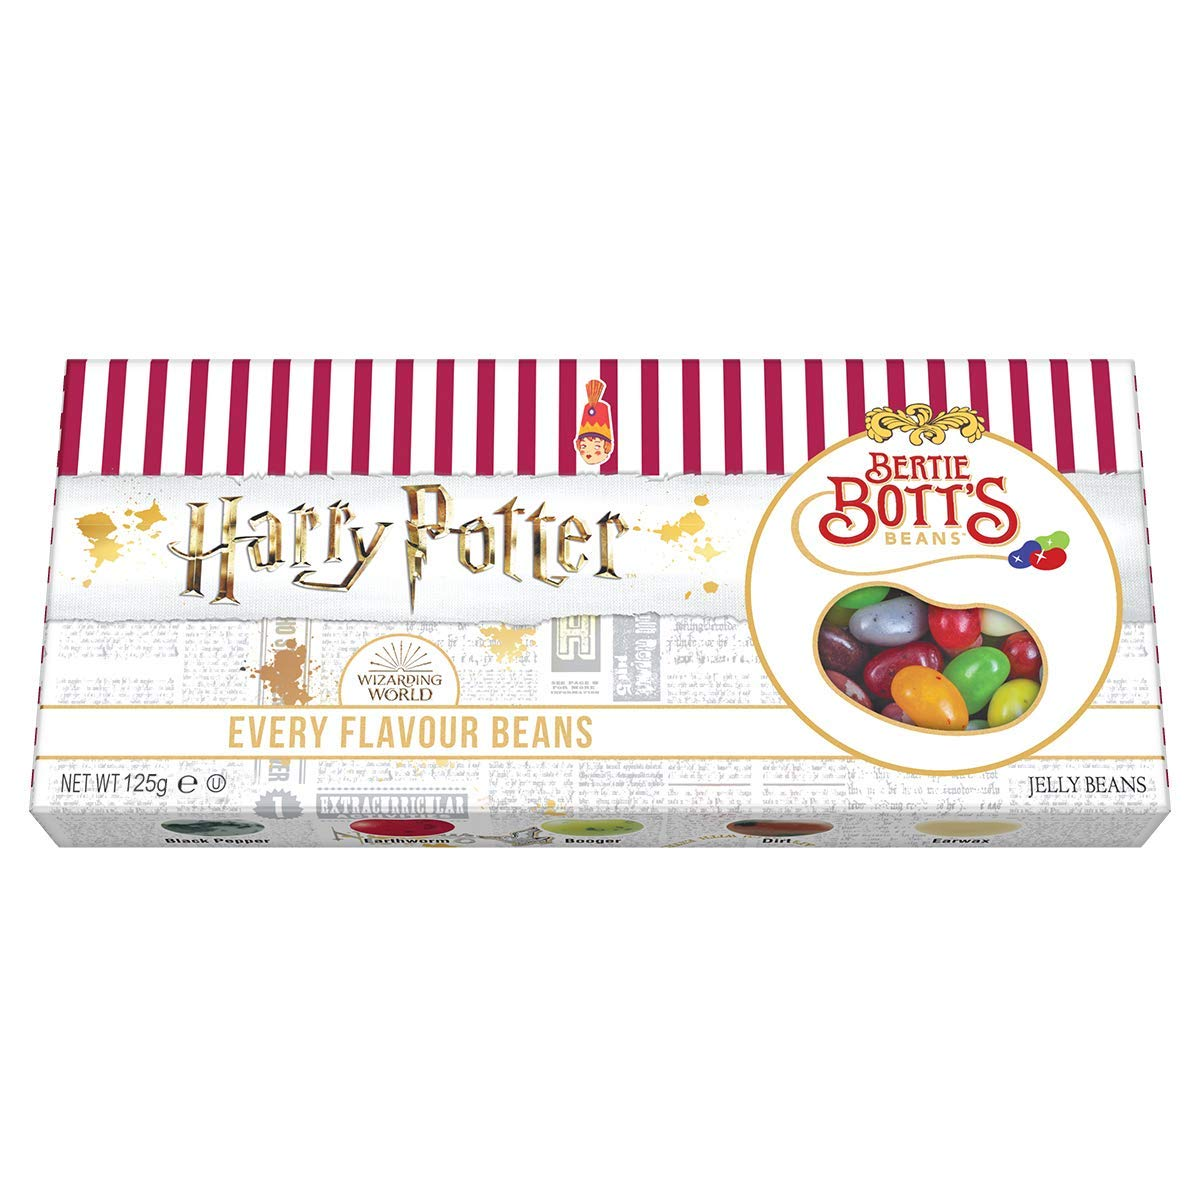 Harry Potter Bertie Bott's Every Flavour Beans Gift Box (125g) -0